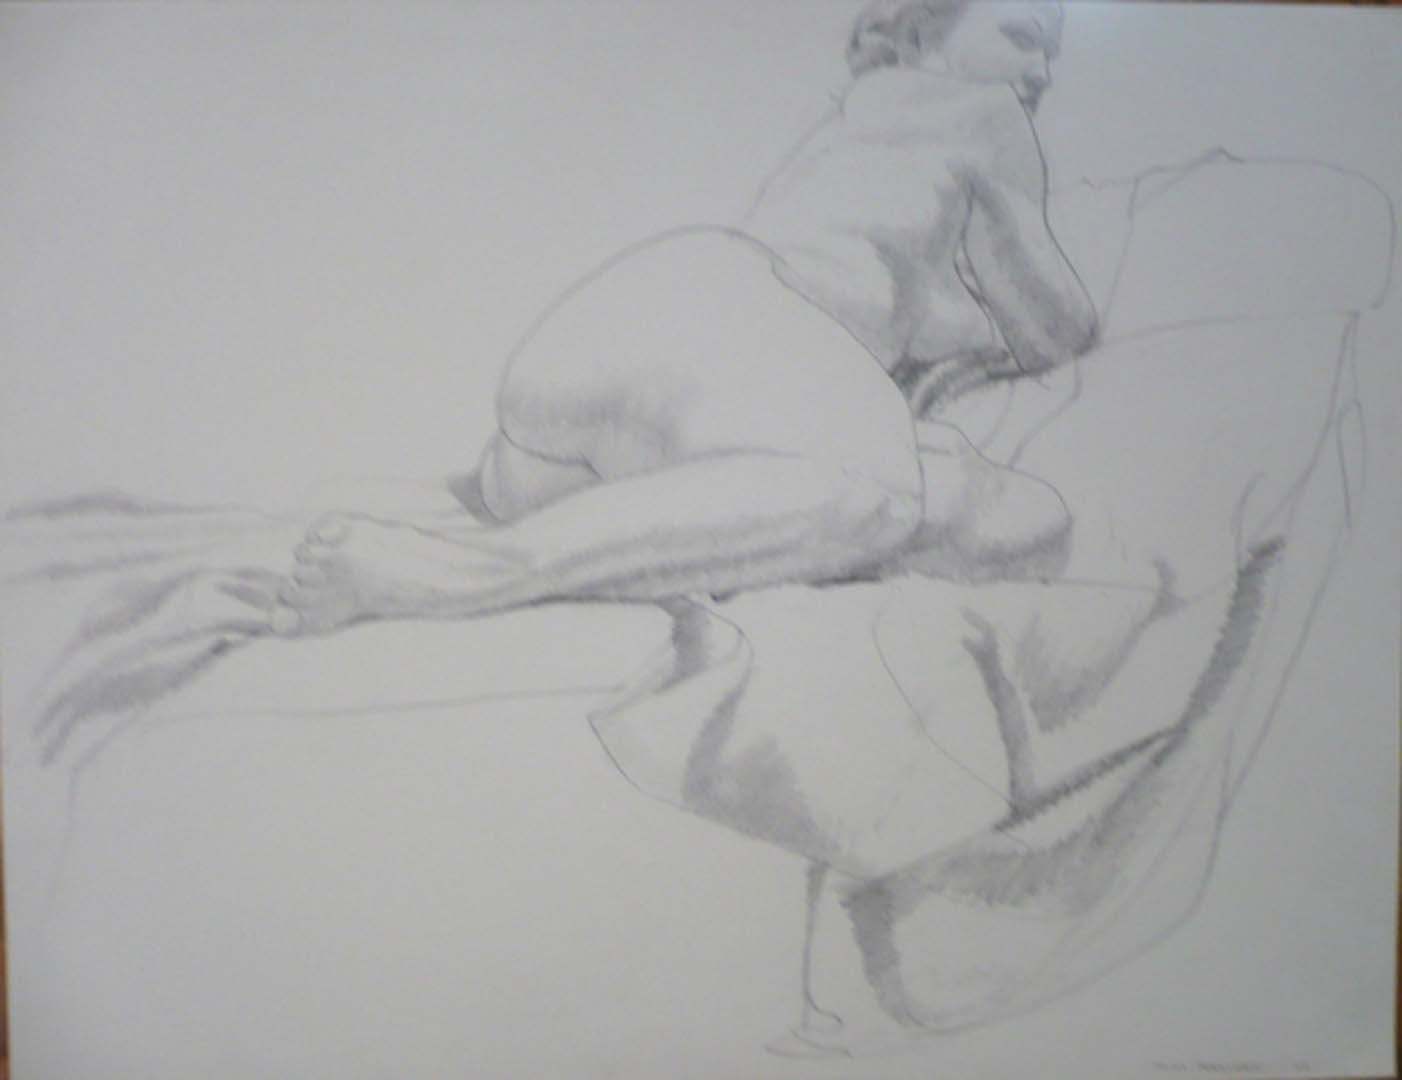 1966 Female Model Reclining on Drape Pencil 20 x 26